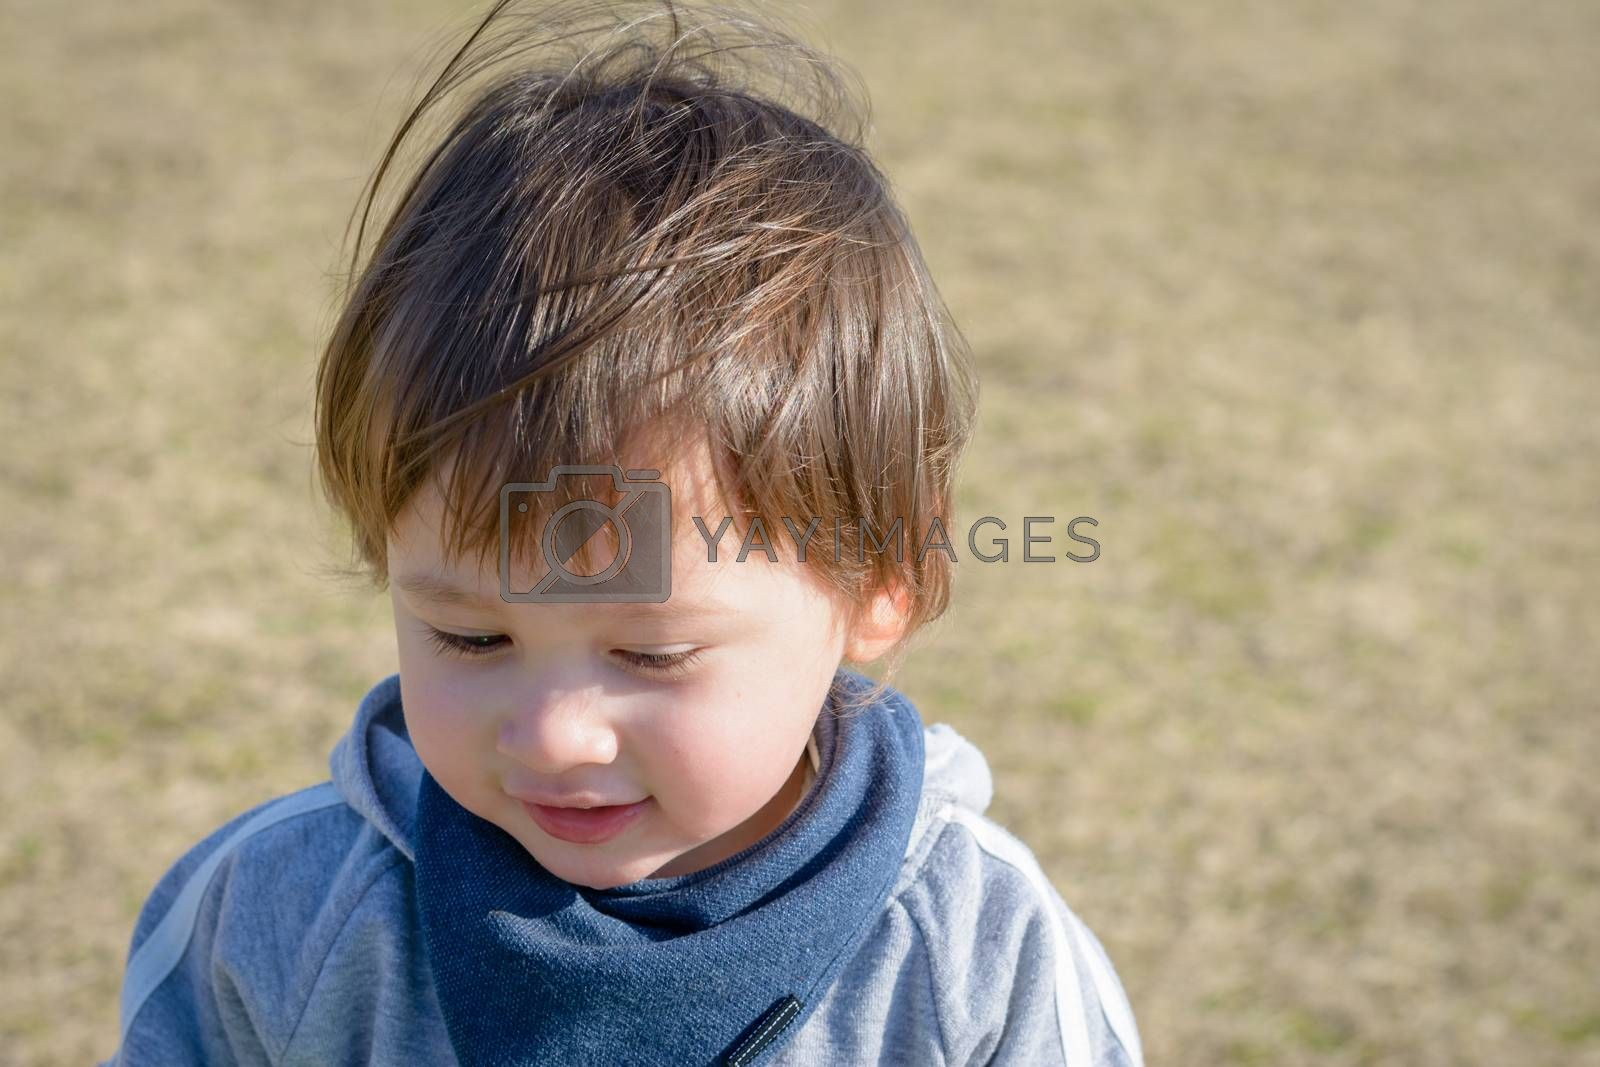 A 2 year old boy at a playground.